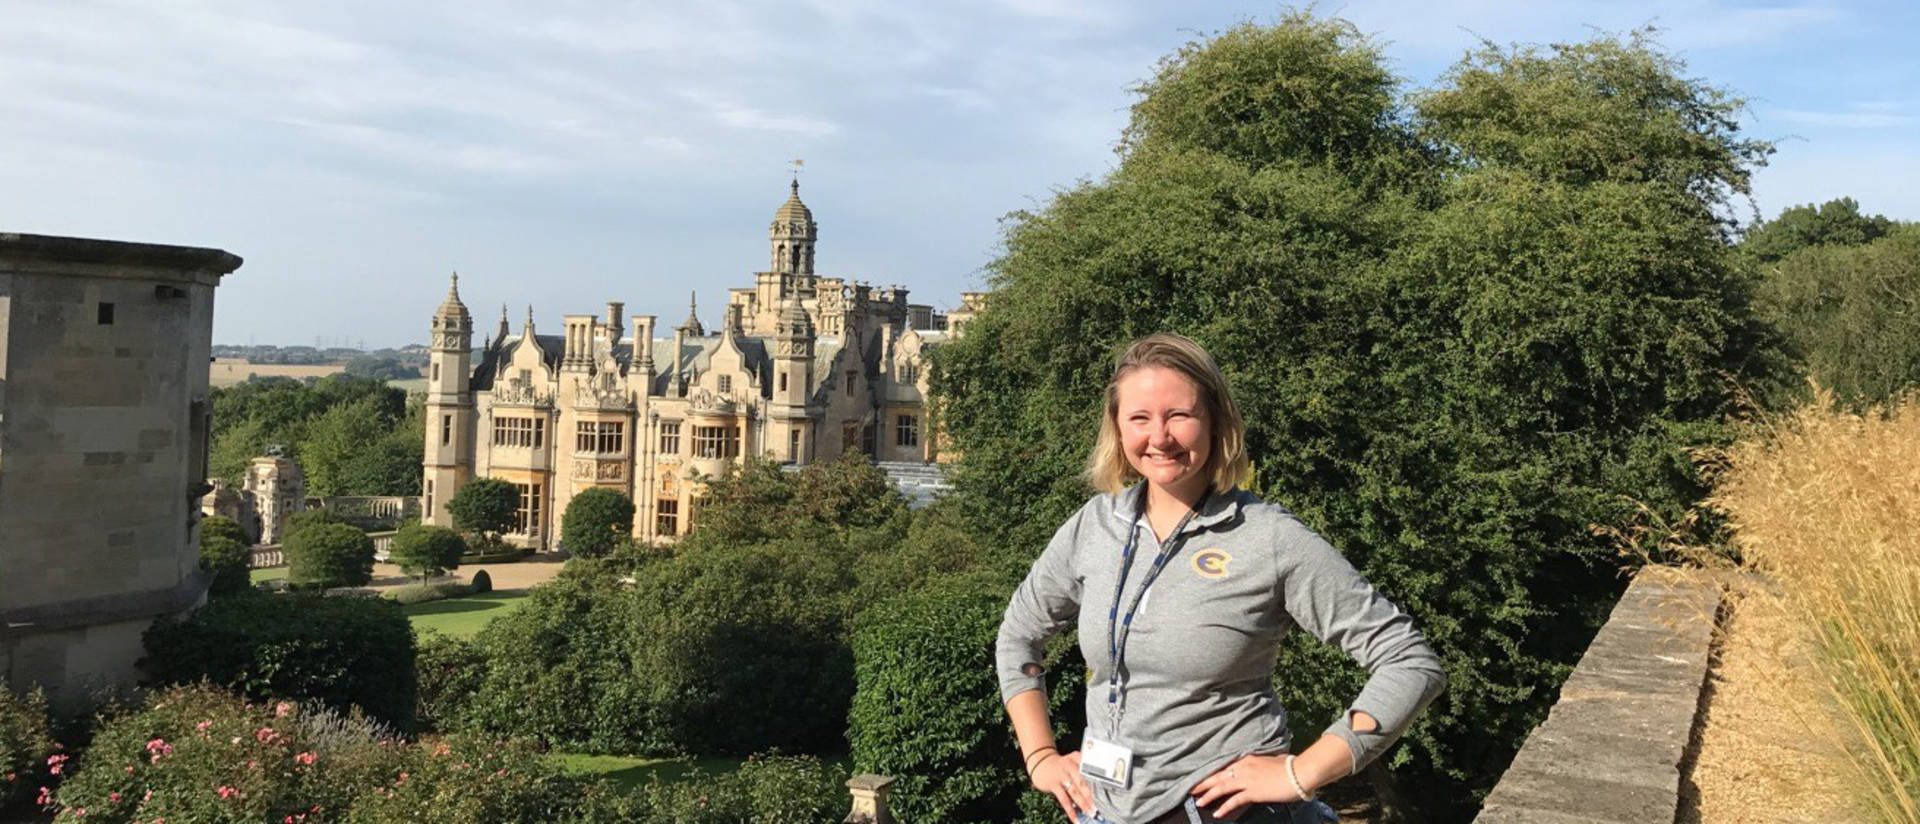 A history class that LeeAnn Przybylski took while studying abroad in England helped her find her passion for international politics.